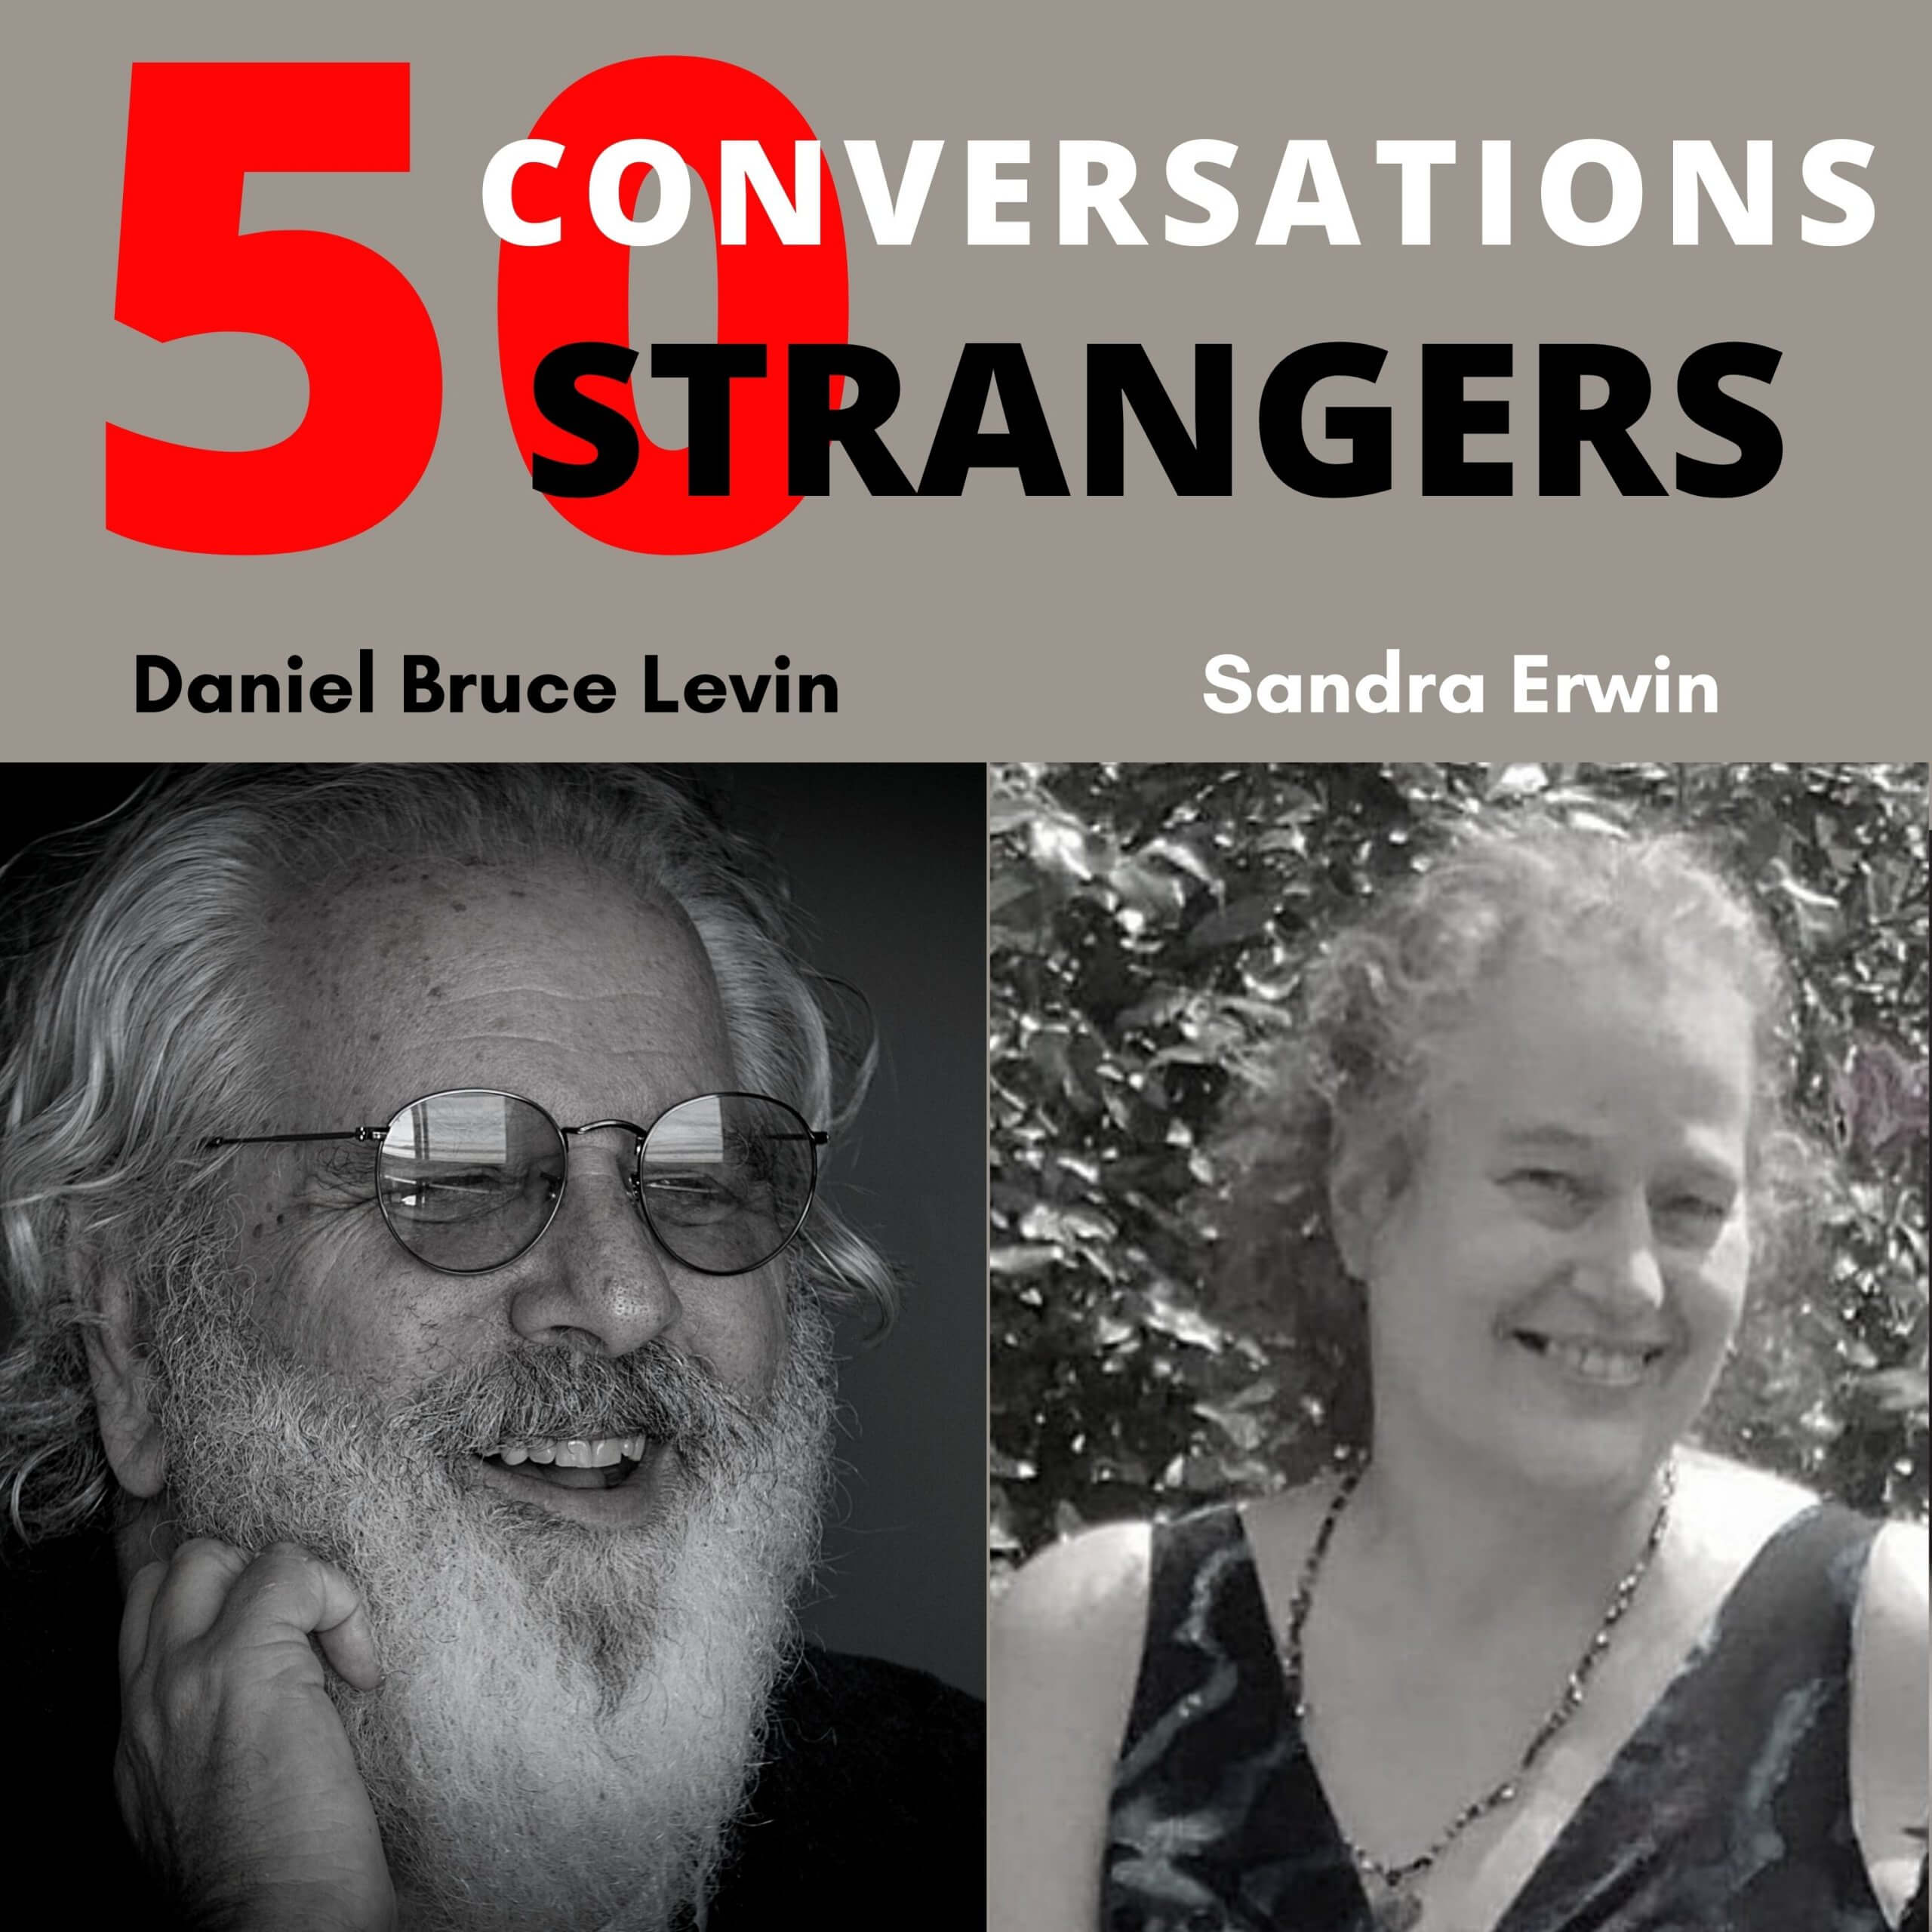 50 Conversations with50 Strangers with Sandra Erwin